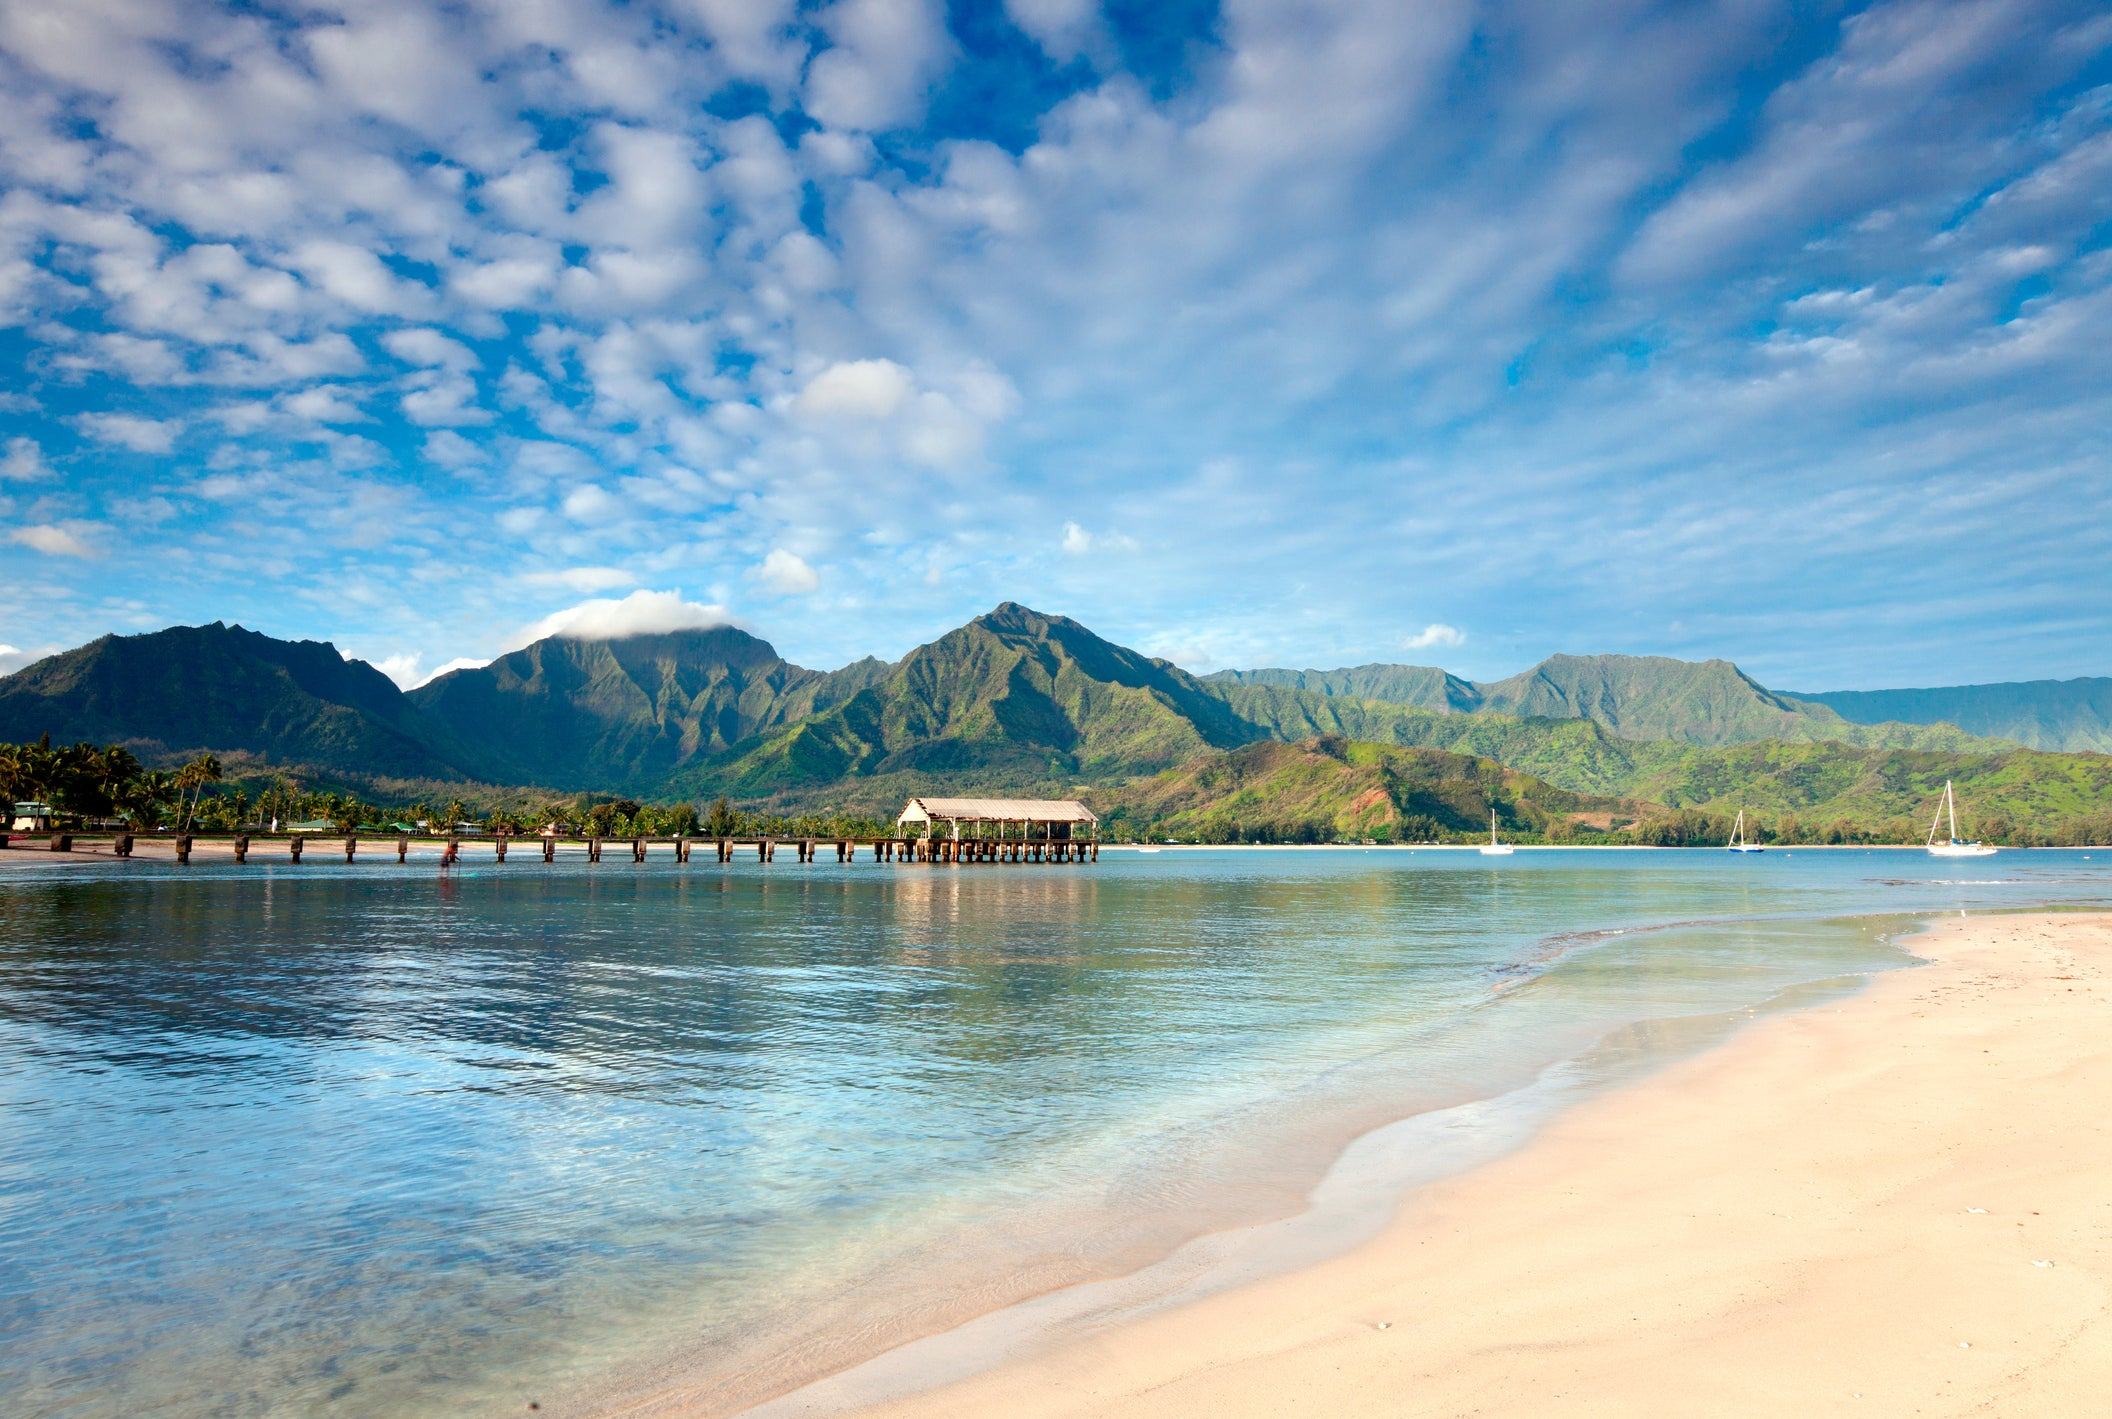 5 things to know about visiting a reopened Hawaii